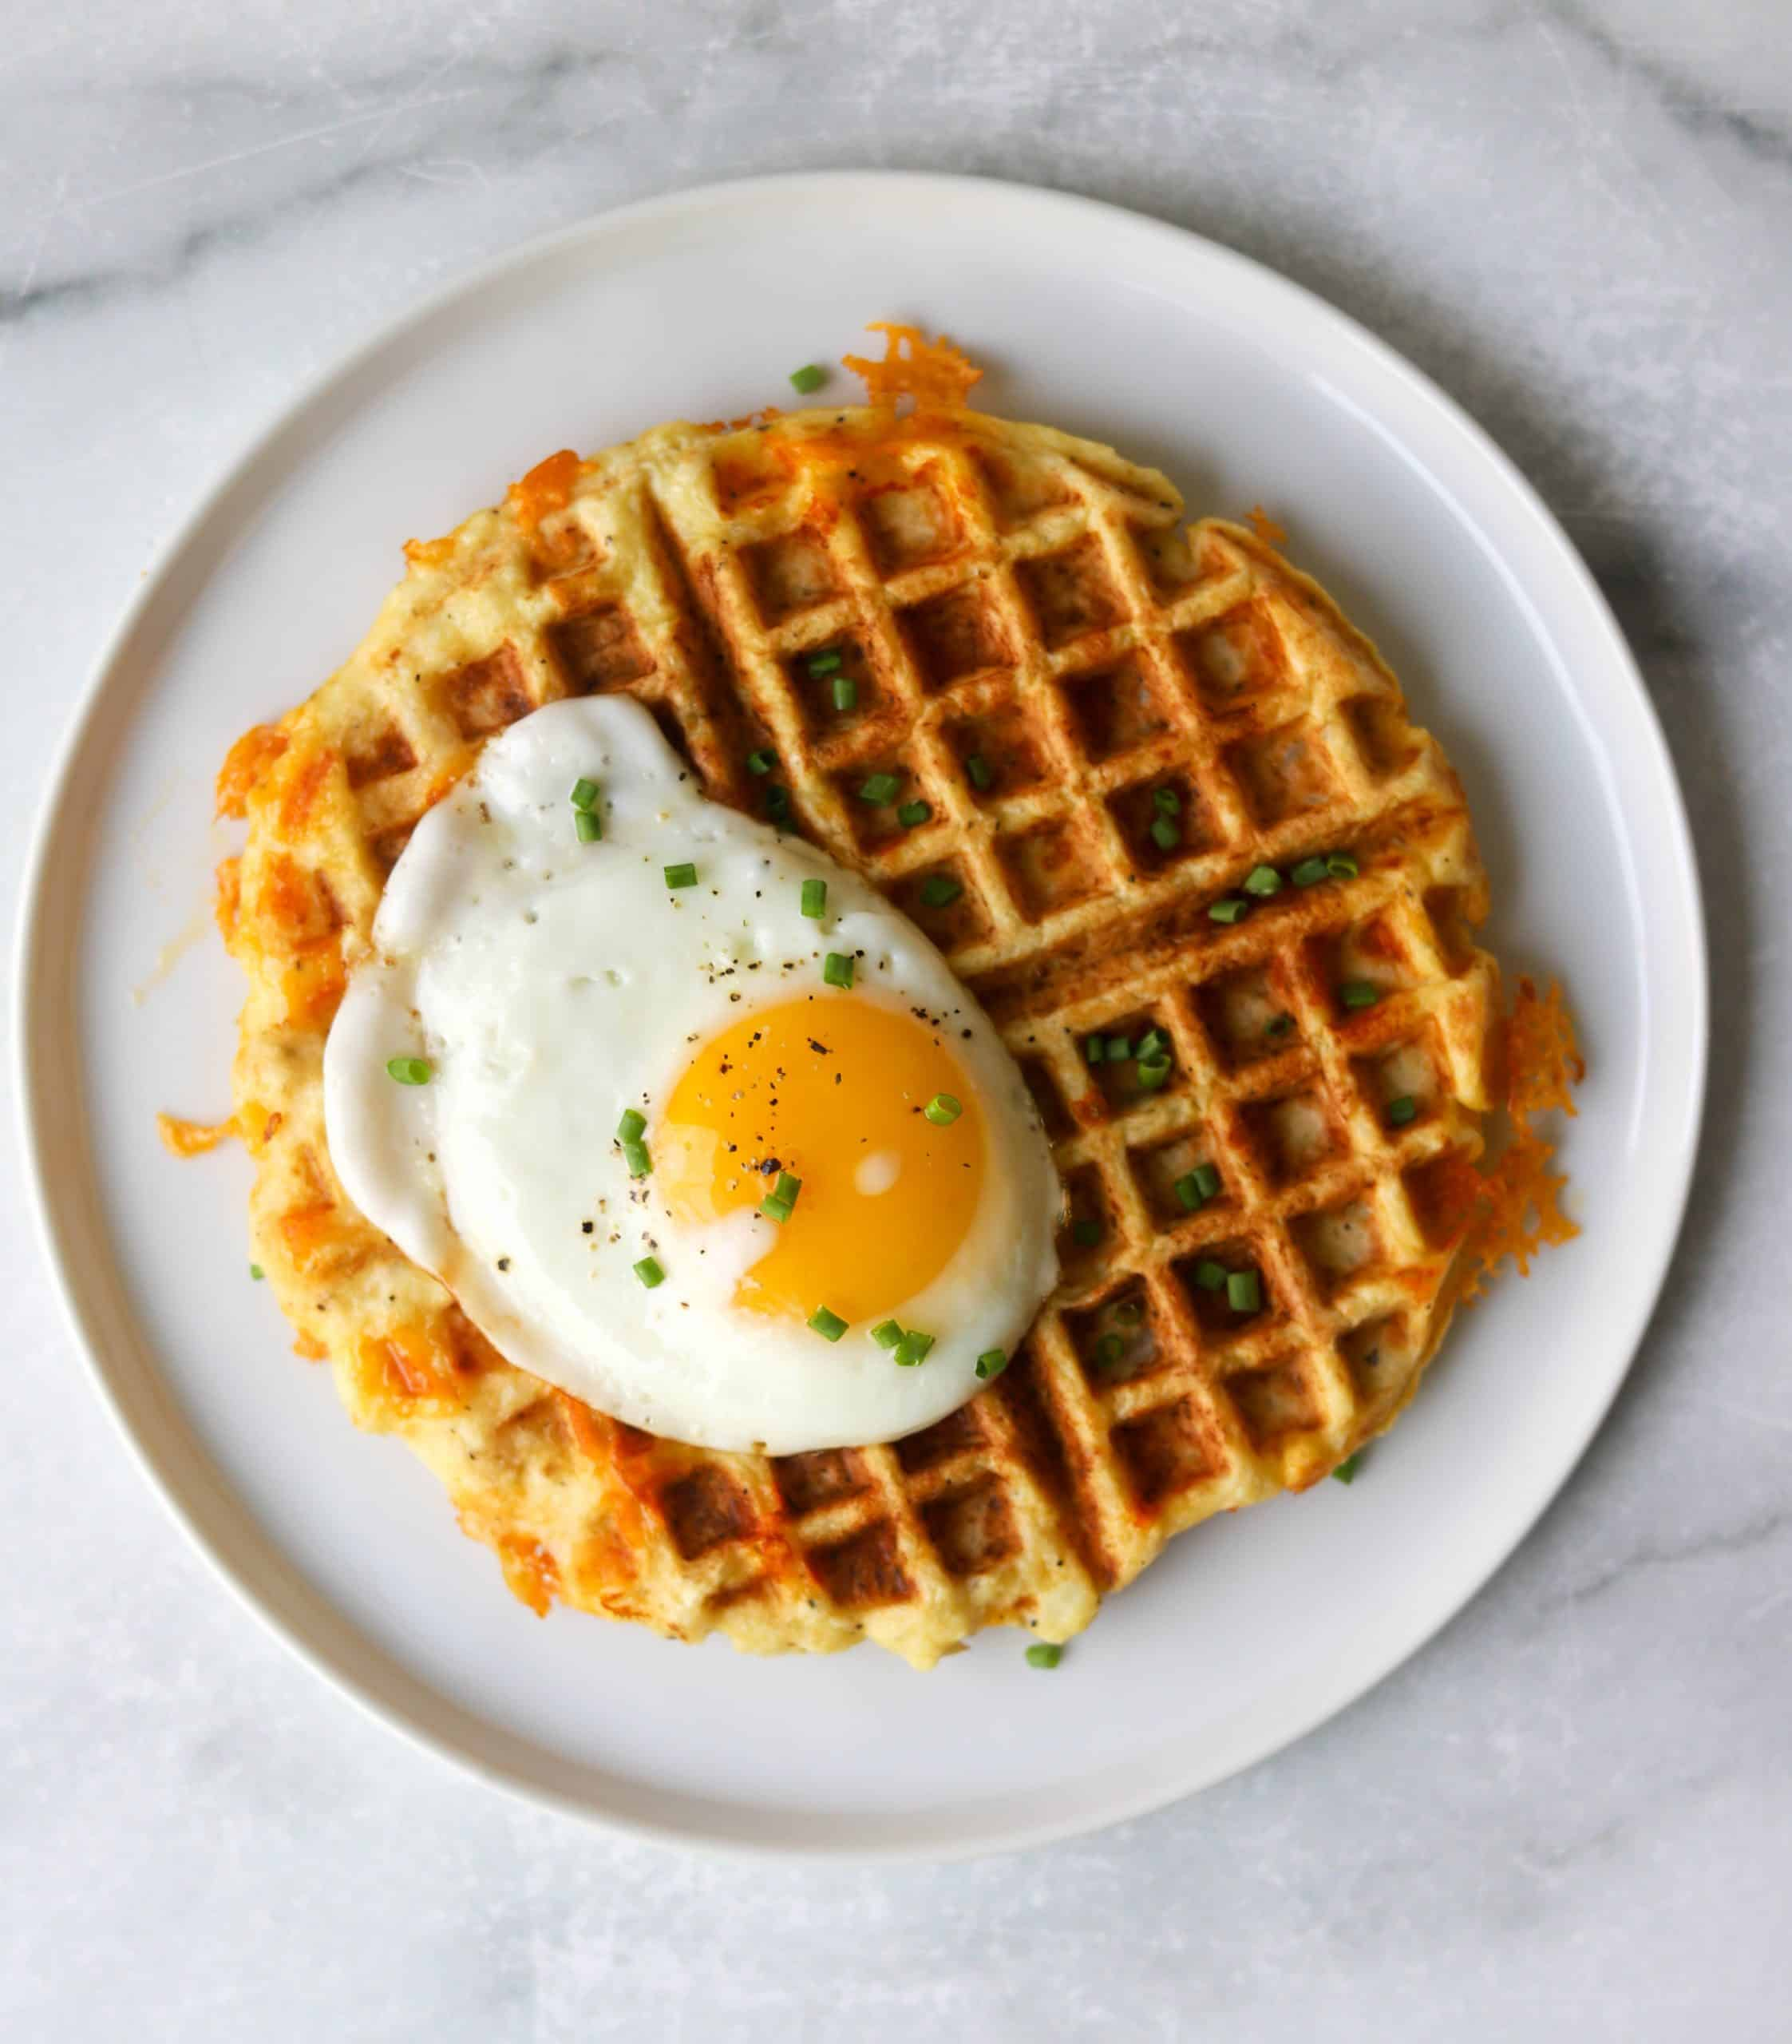 A cauliflower waffle with crisp cheesy edges on a white plate with a fried egg and chives on top.